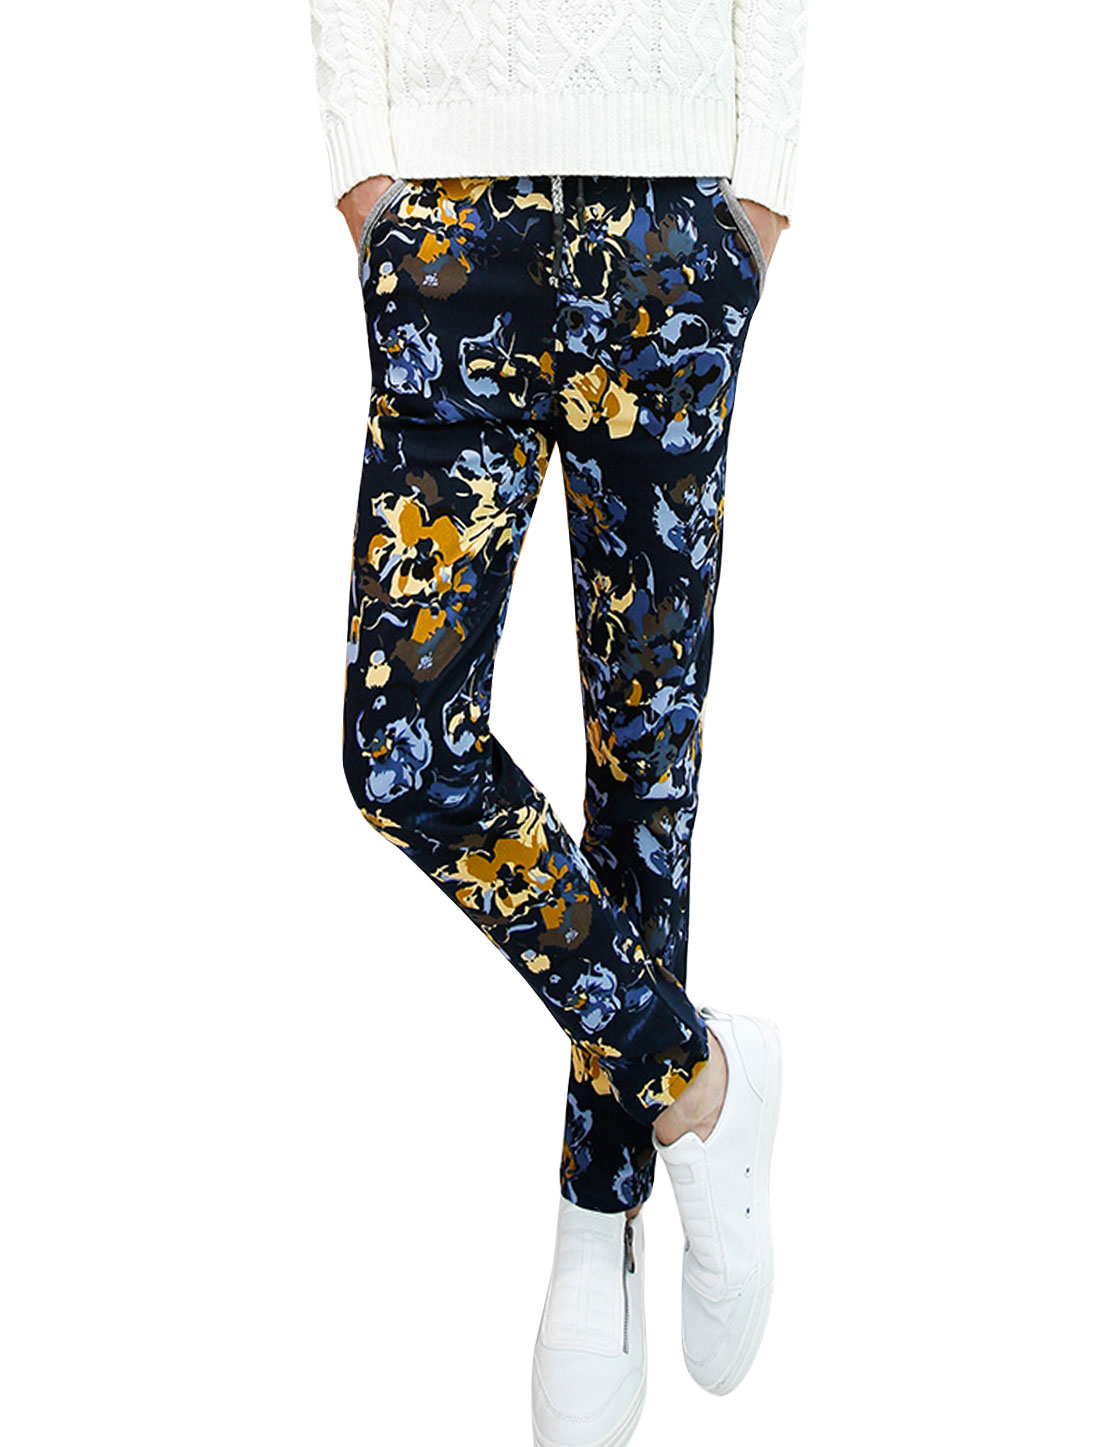 Men Patch Hip Pockets All Over Novelty Print Casual Pants Navy Blue W30